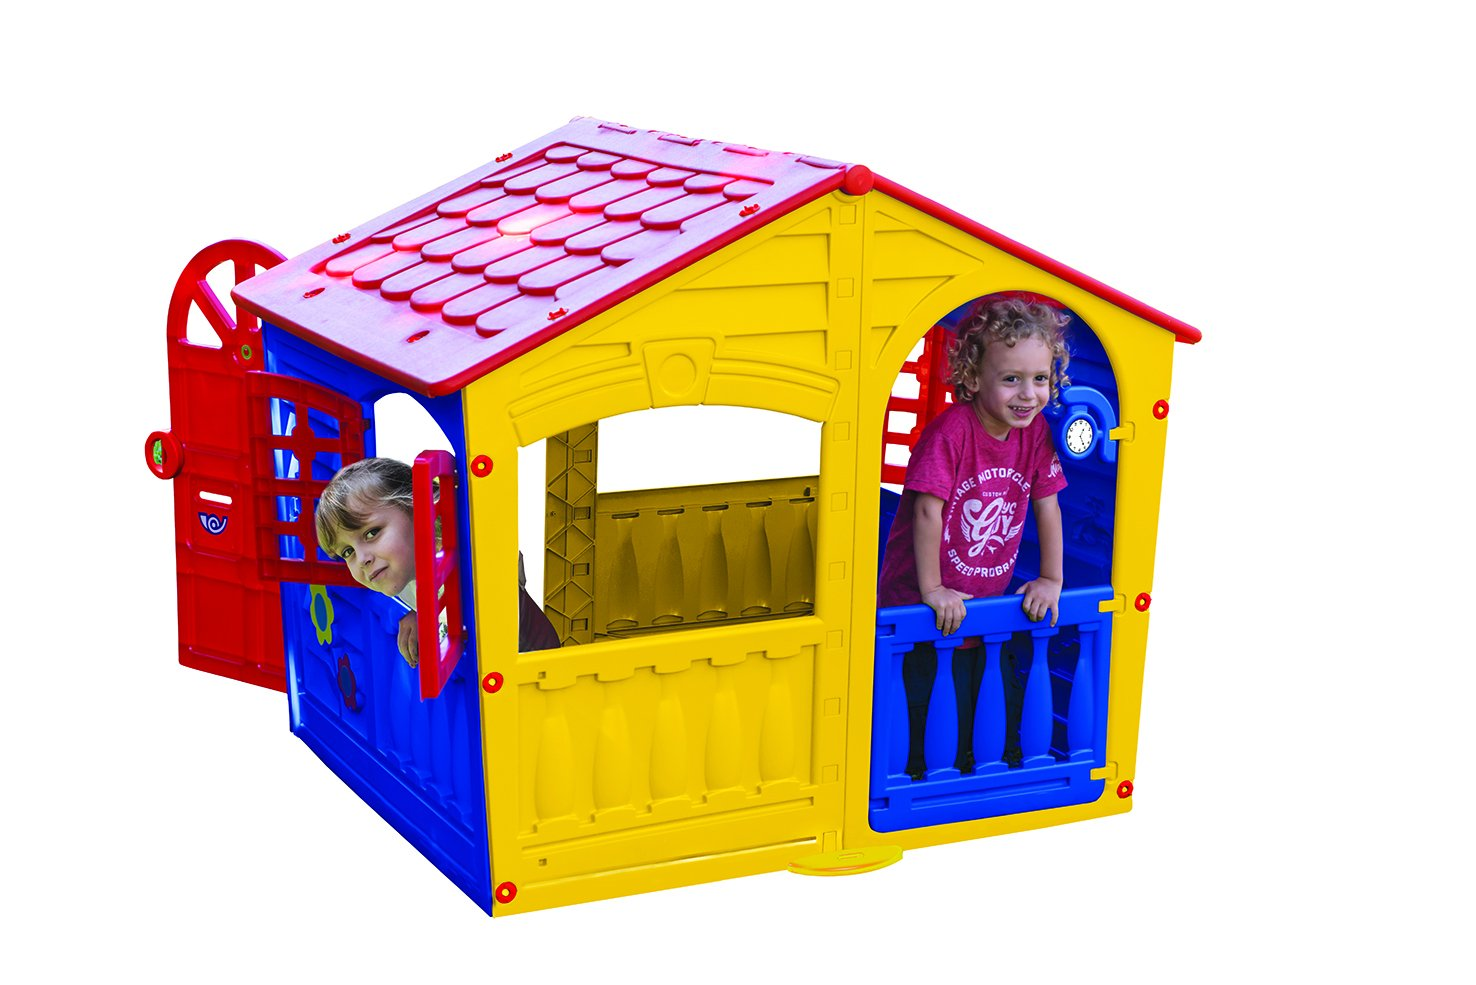 Palplay House of Fun Outdoor Play House Yellow Red Blue ; Medium